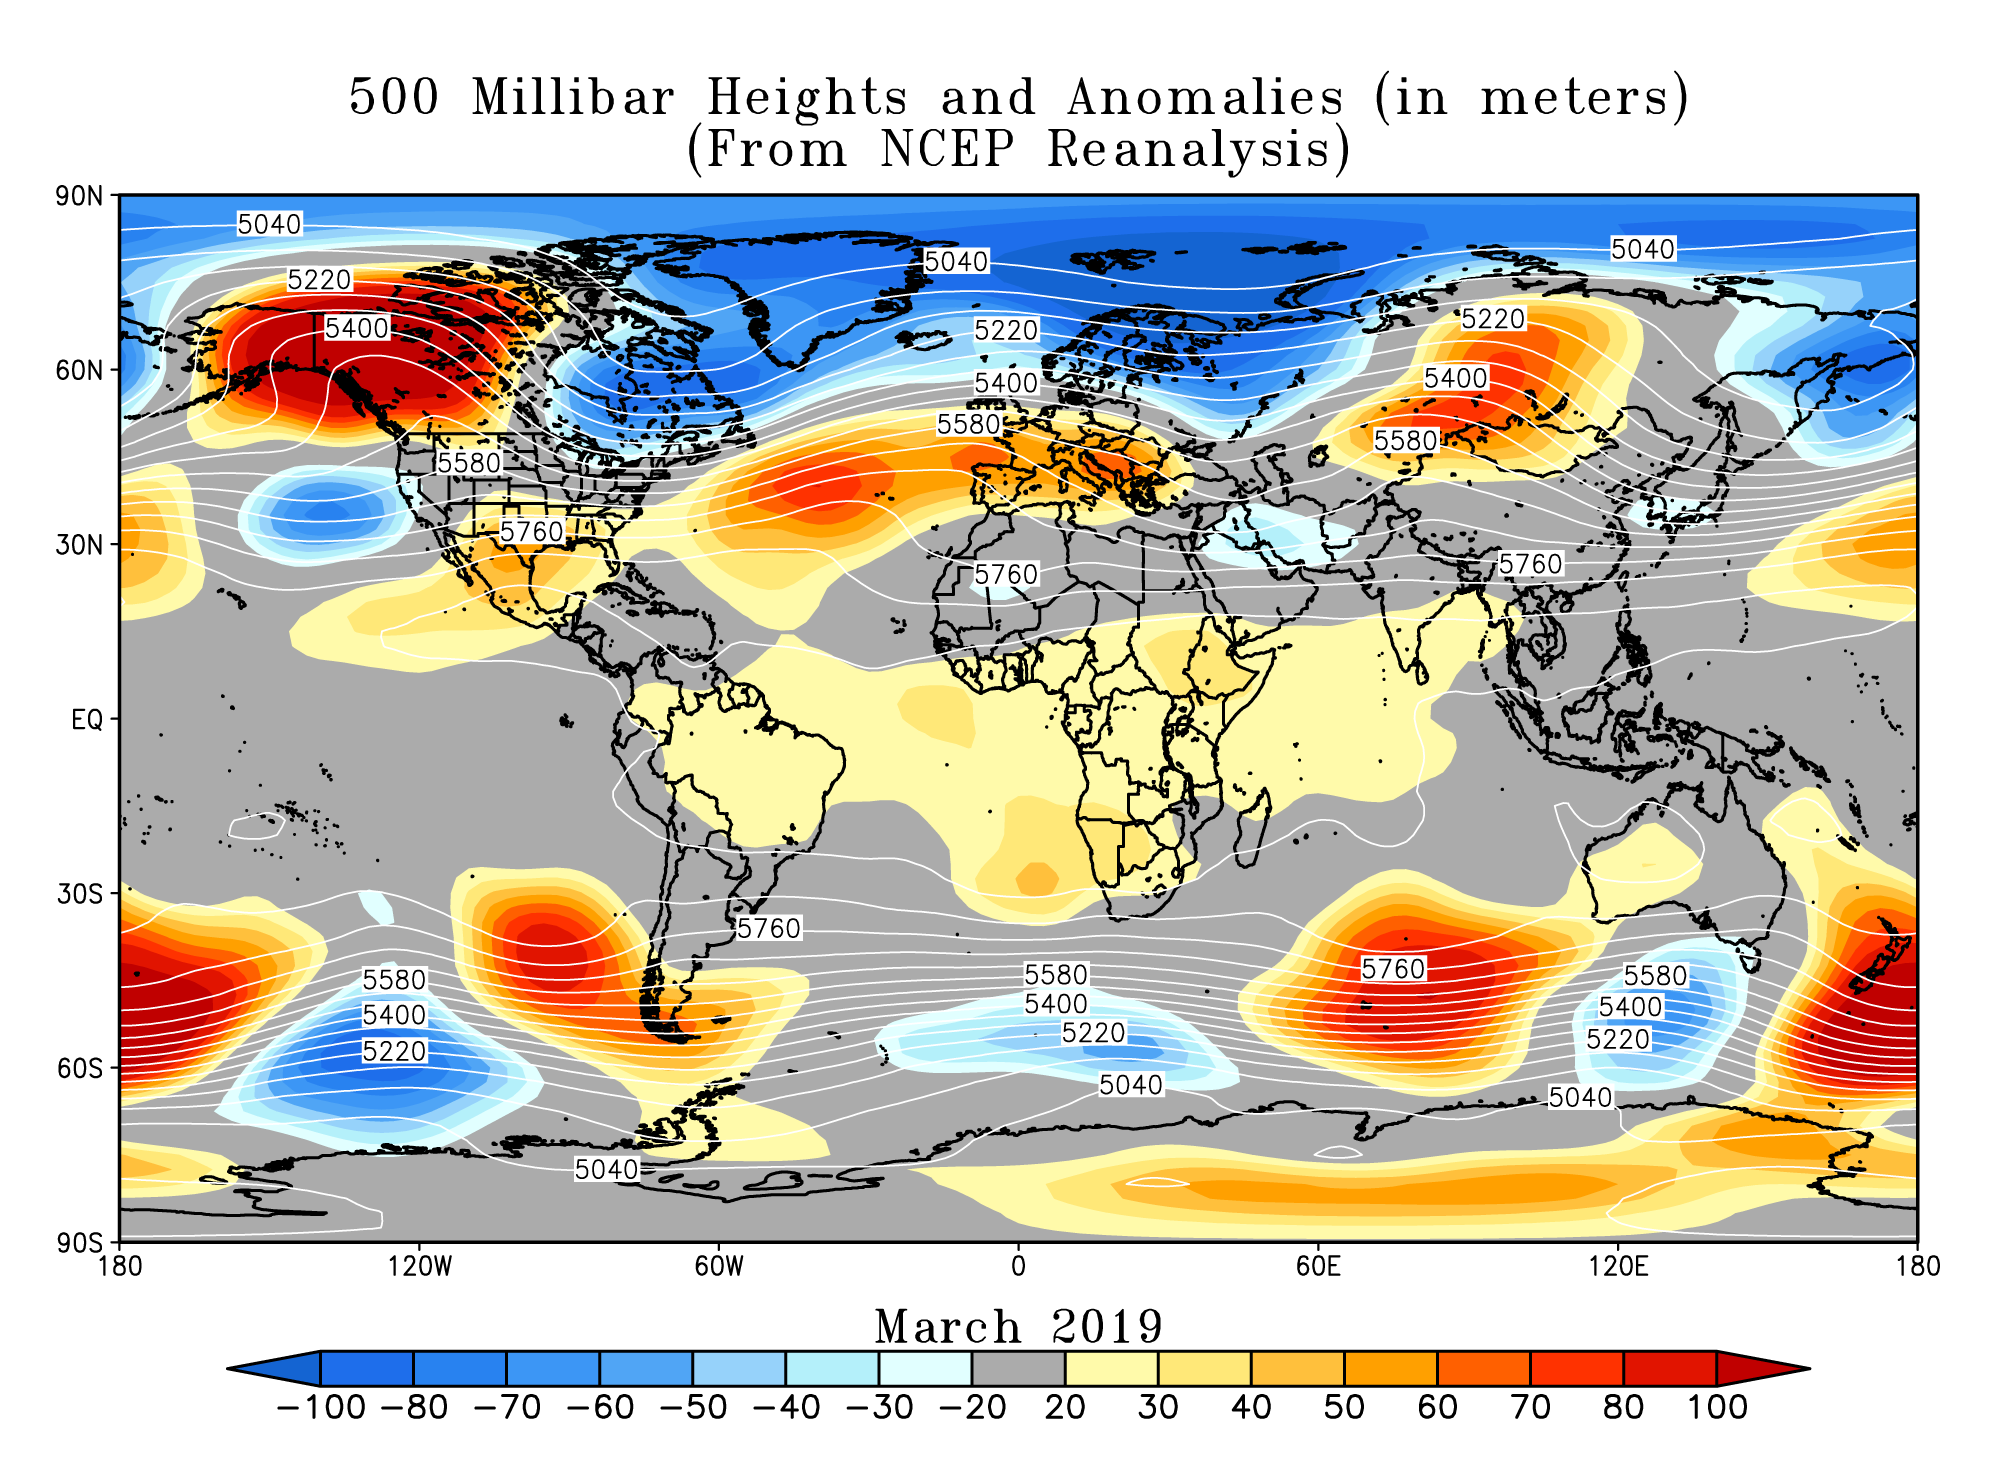 Northern Hemisphere monthly upper-level circulation pattern and anomalies (cylindrical projection)